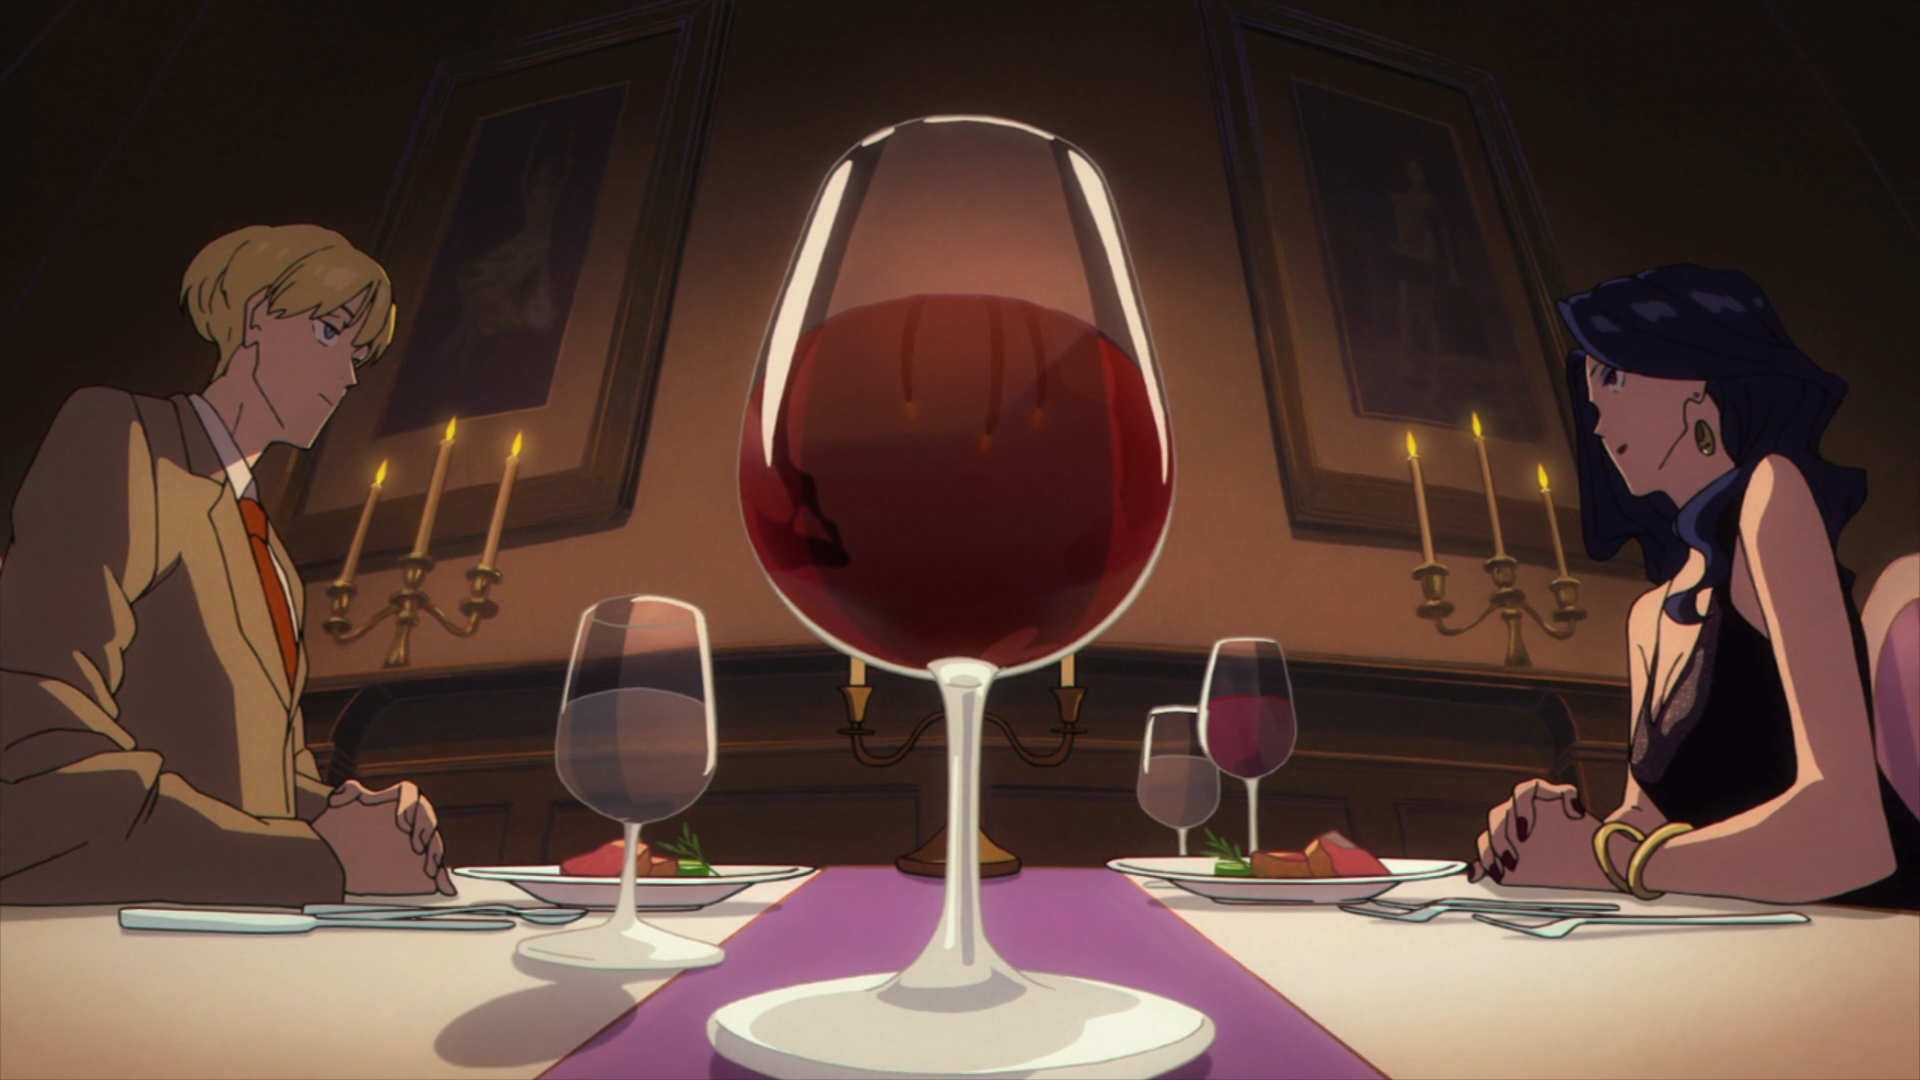 A fish-eye view of Mauve and Jean in formal clothing sat opposite each other over a diner table, with a large glass of red wine between the two, close to the camera.